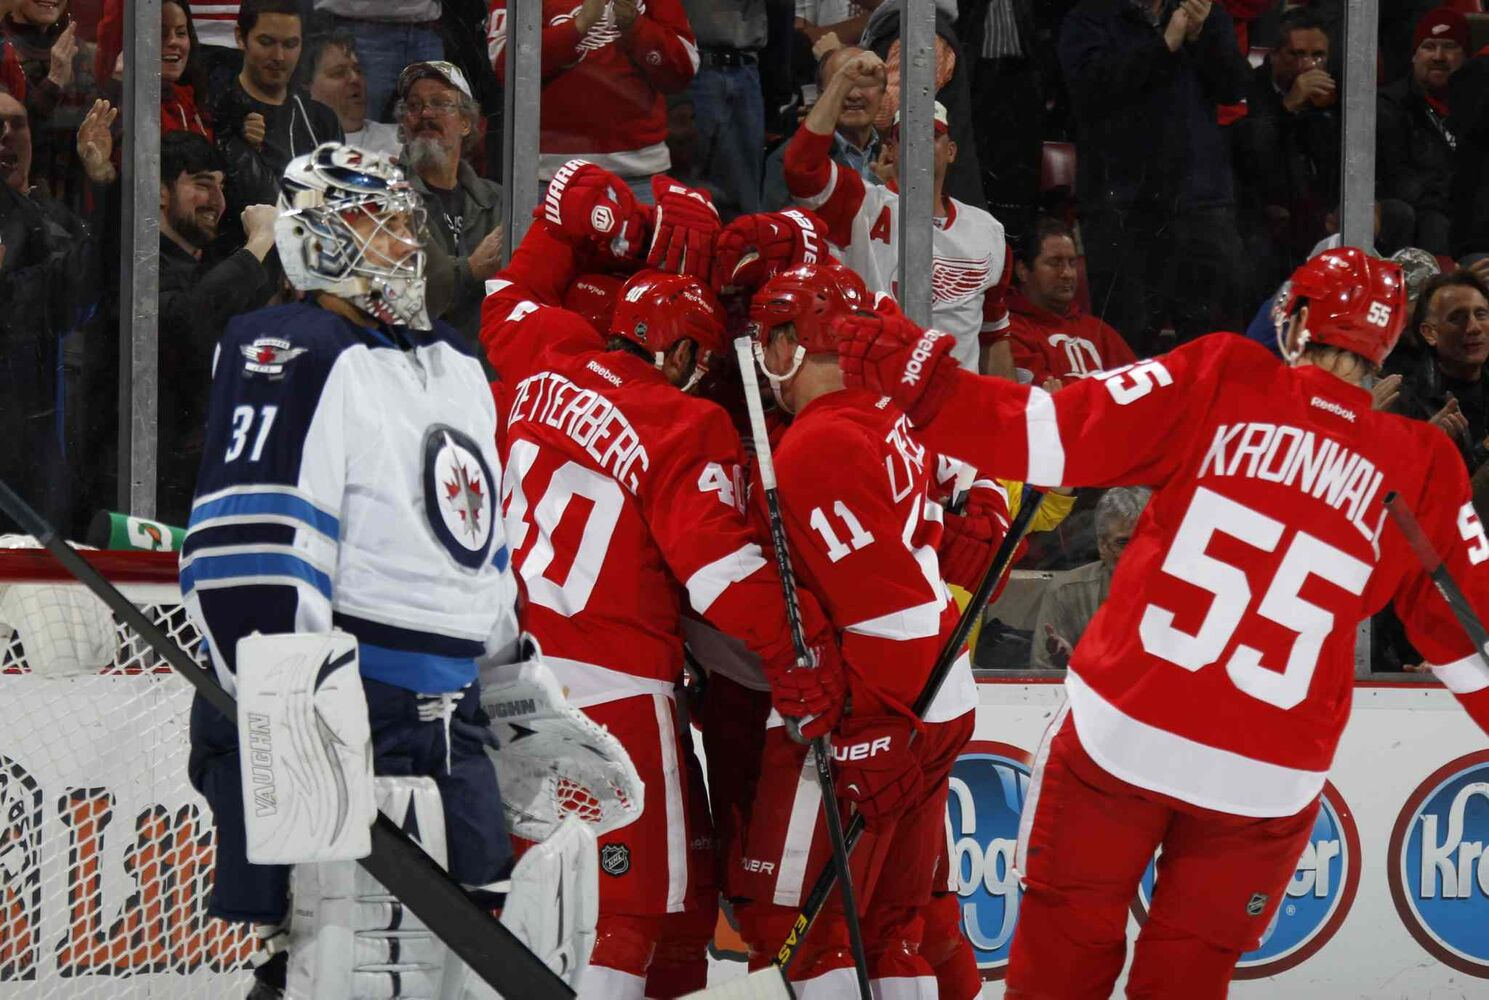 Detroit Red Wings players congratulate Pavel Datsyuk after his first-period goal against Winnipeg Jets goalie Ondrej Pavelec. (Julian H. Gonzalez / Tribune Media MCT)